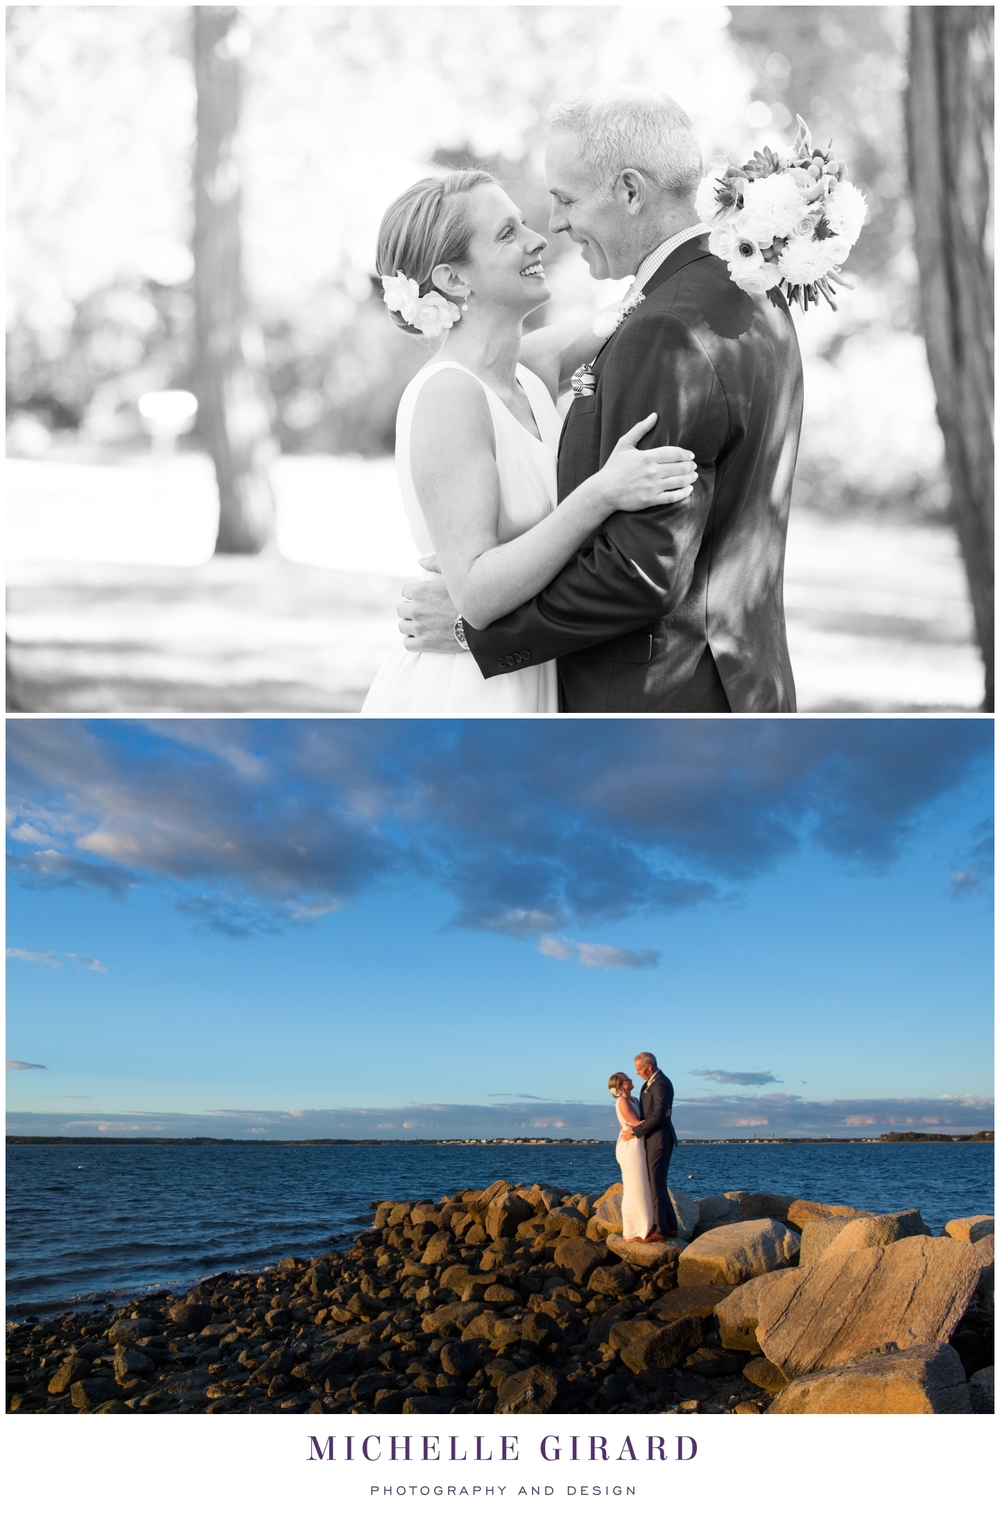 IntimateBeachWedding_CapeWedding_MichelleGirardPhotography1.jpg